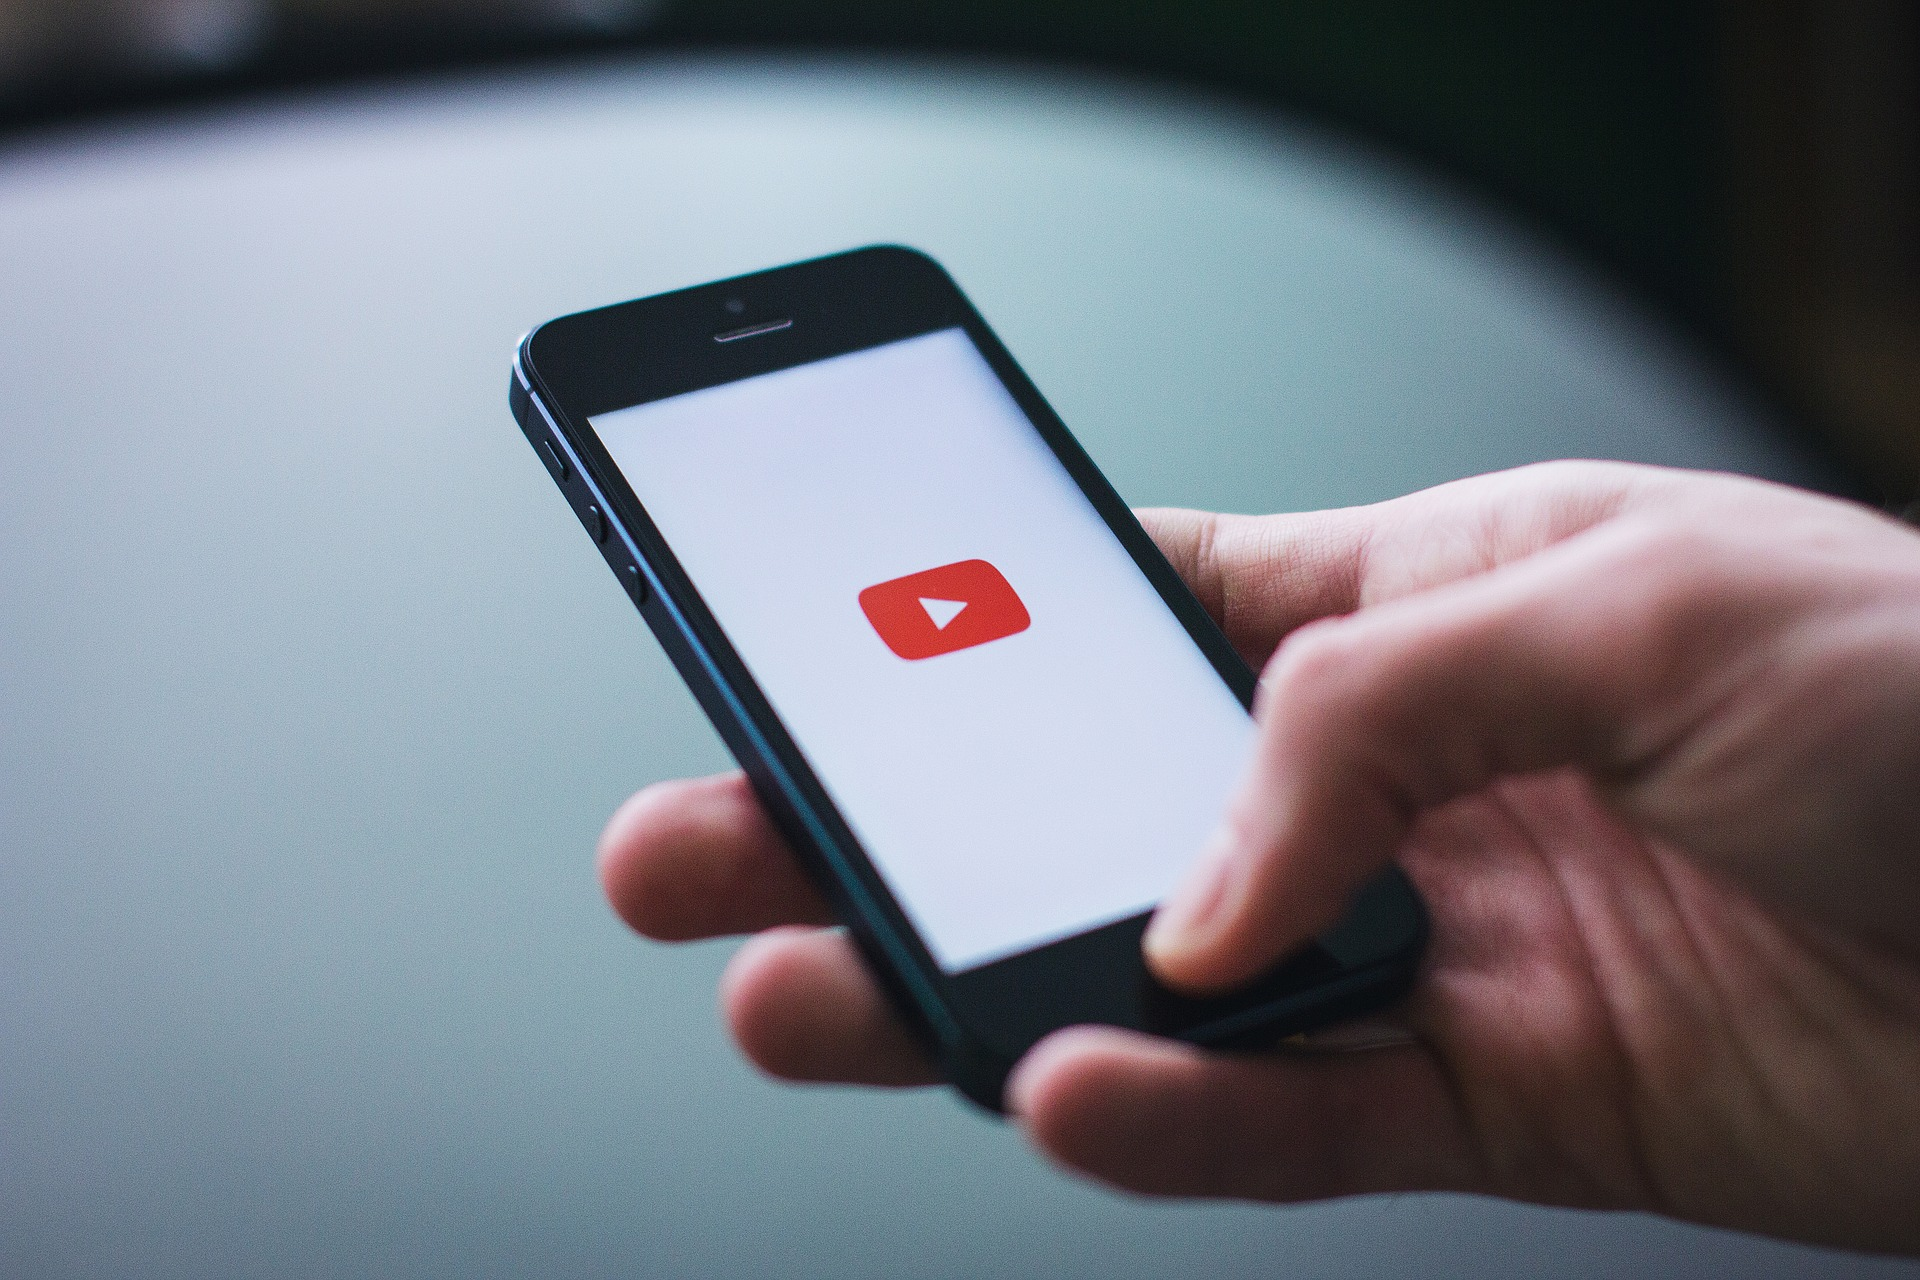 An image of a hand holding a phone with the YouTube logo on it